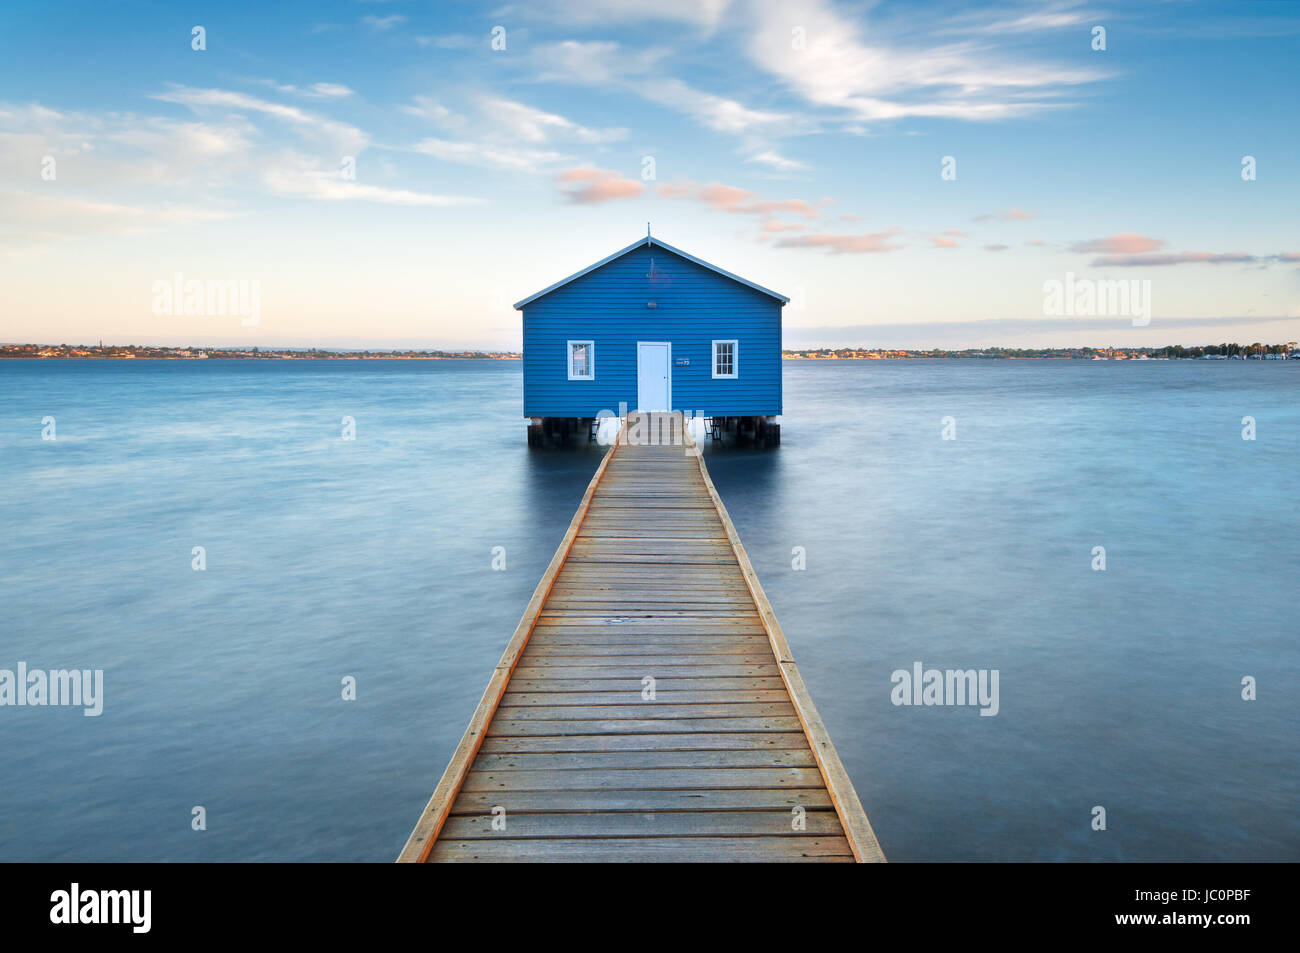 Famous Crawley Edge Boatshed in Perth's Matilda Bay. - Stock Image